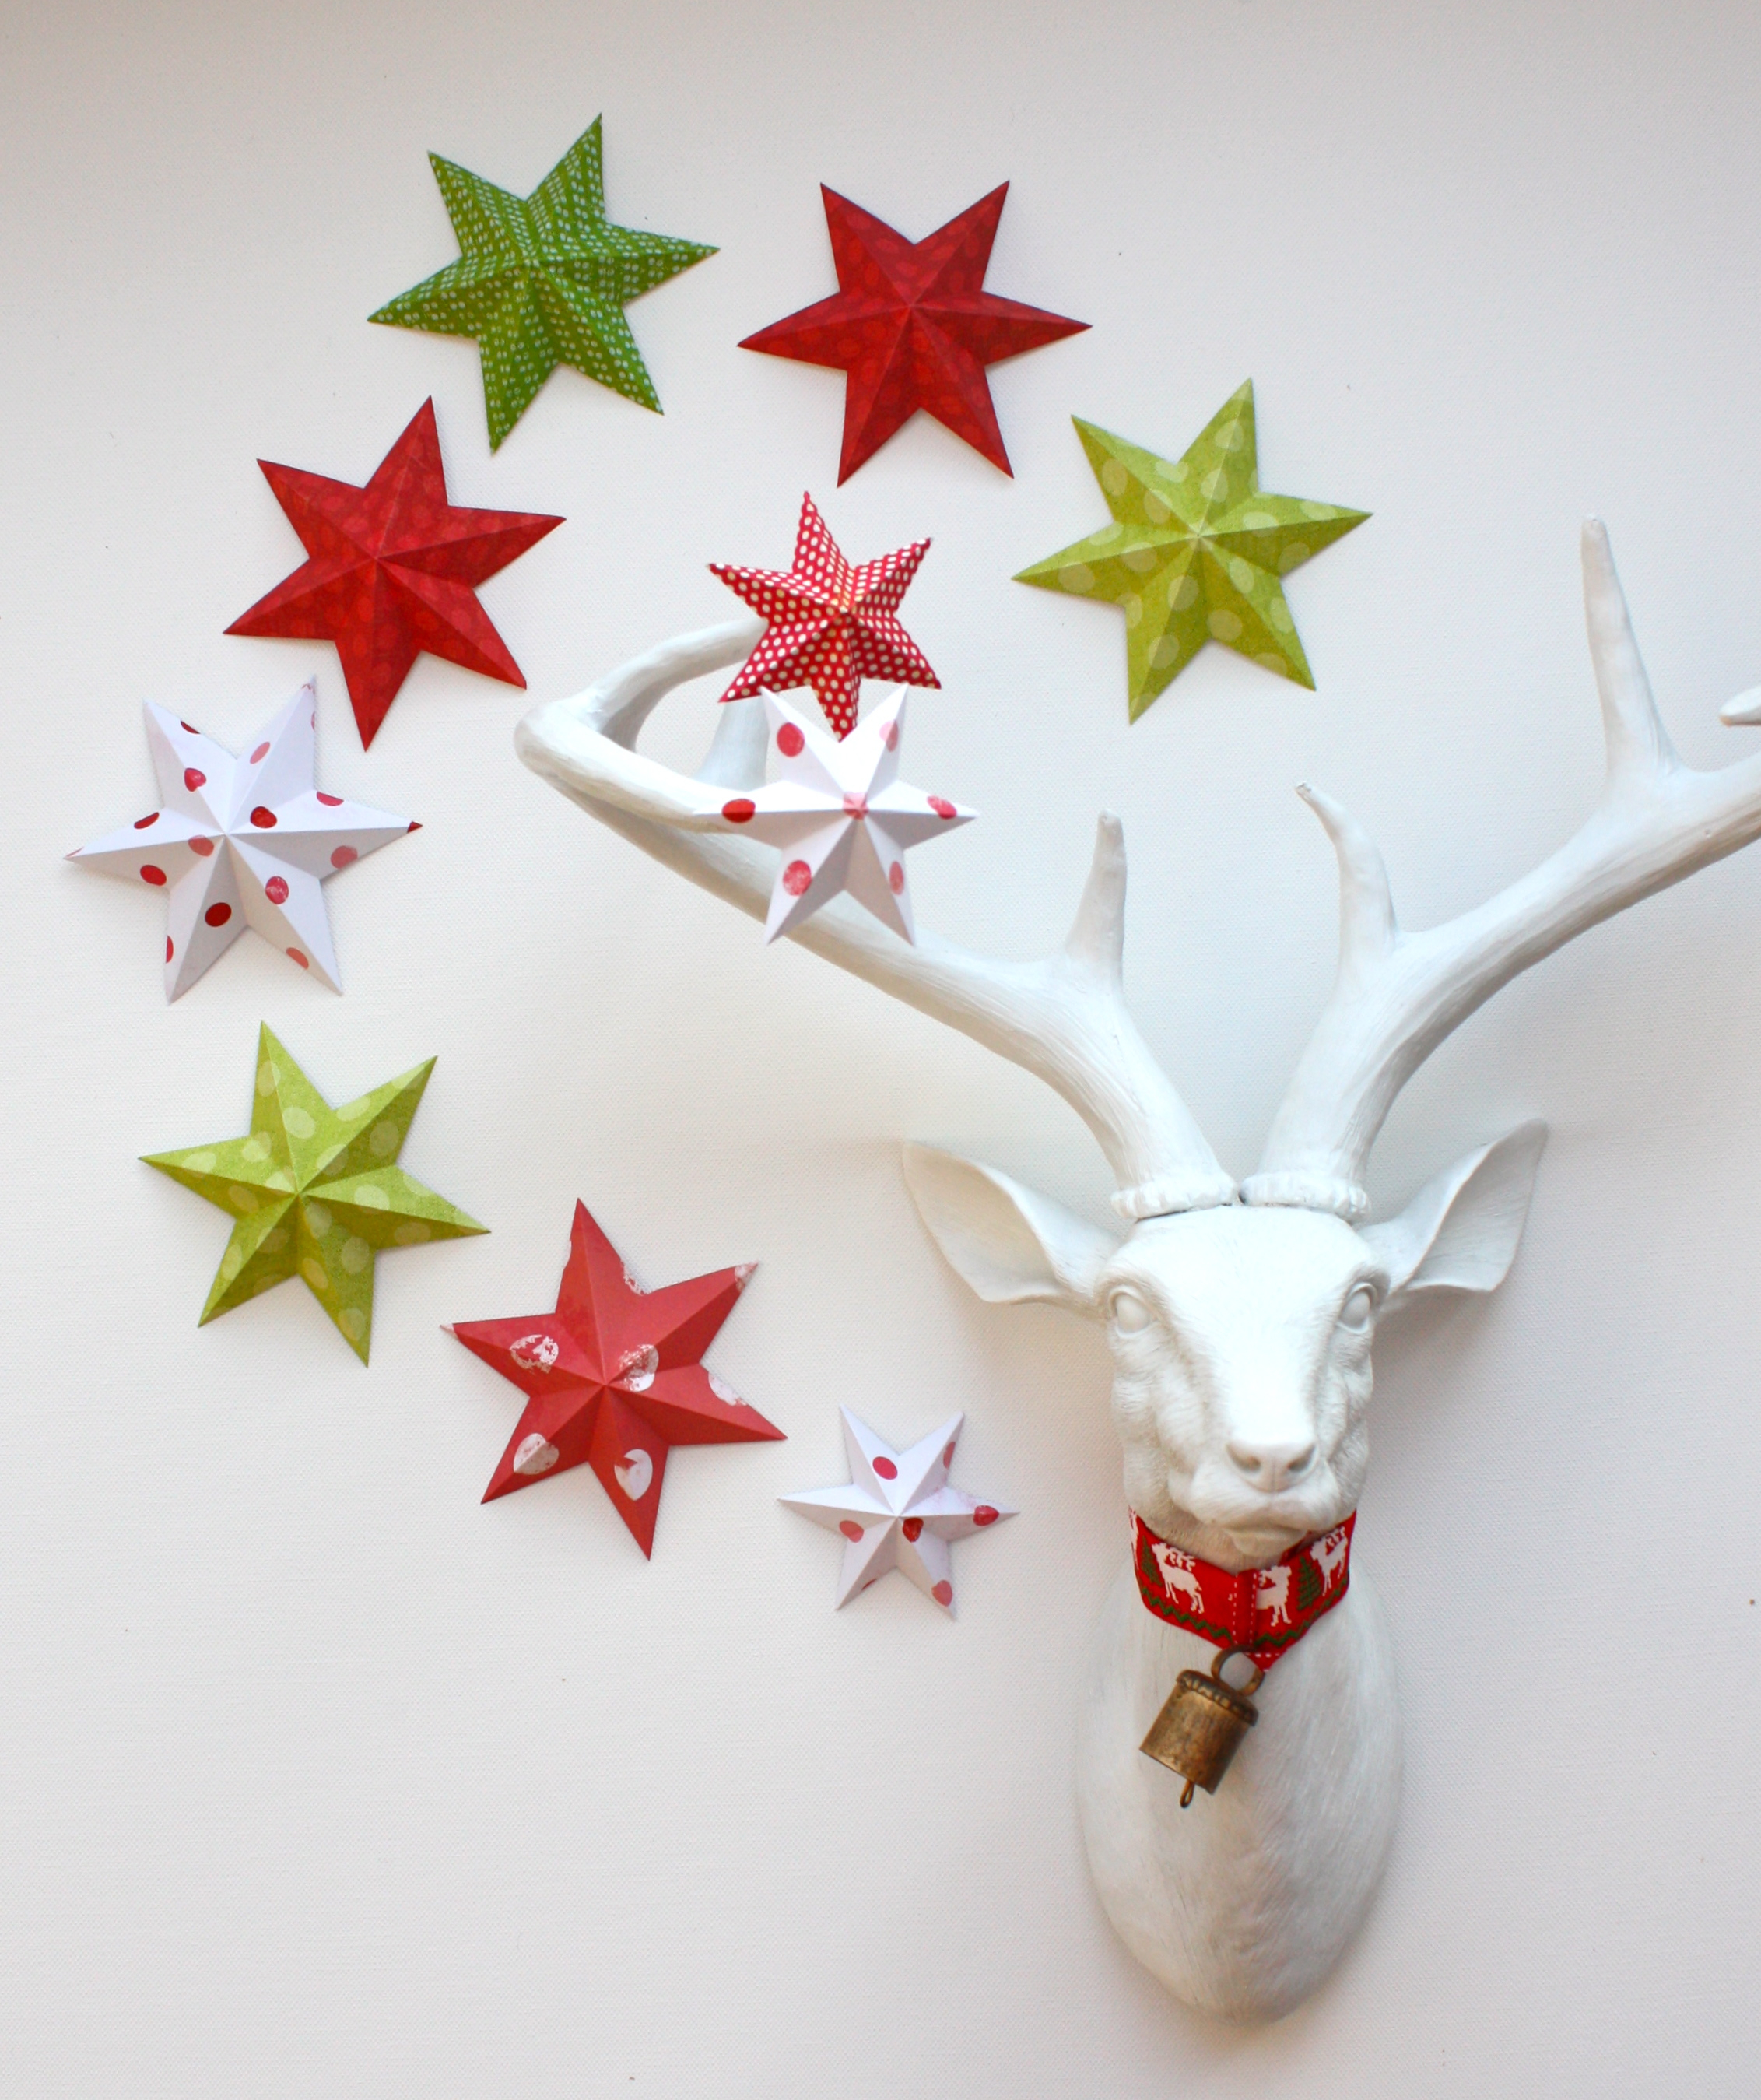 50 DIY Paper Christmas Ornaments To Create With The Kids Tonight!